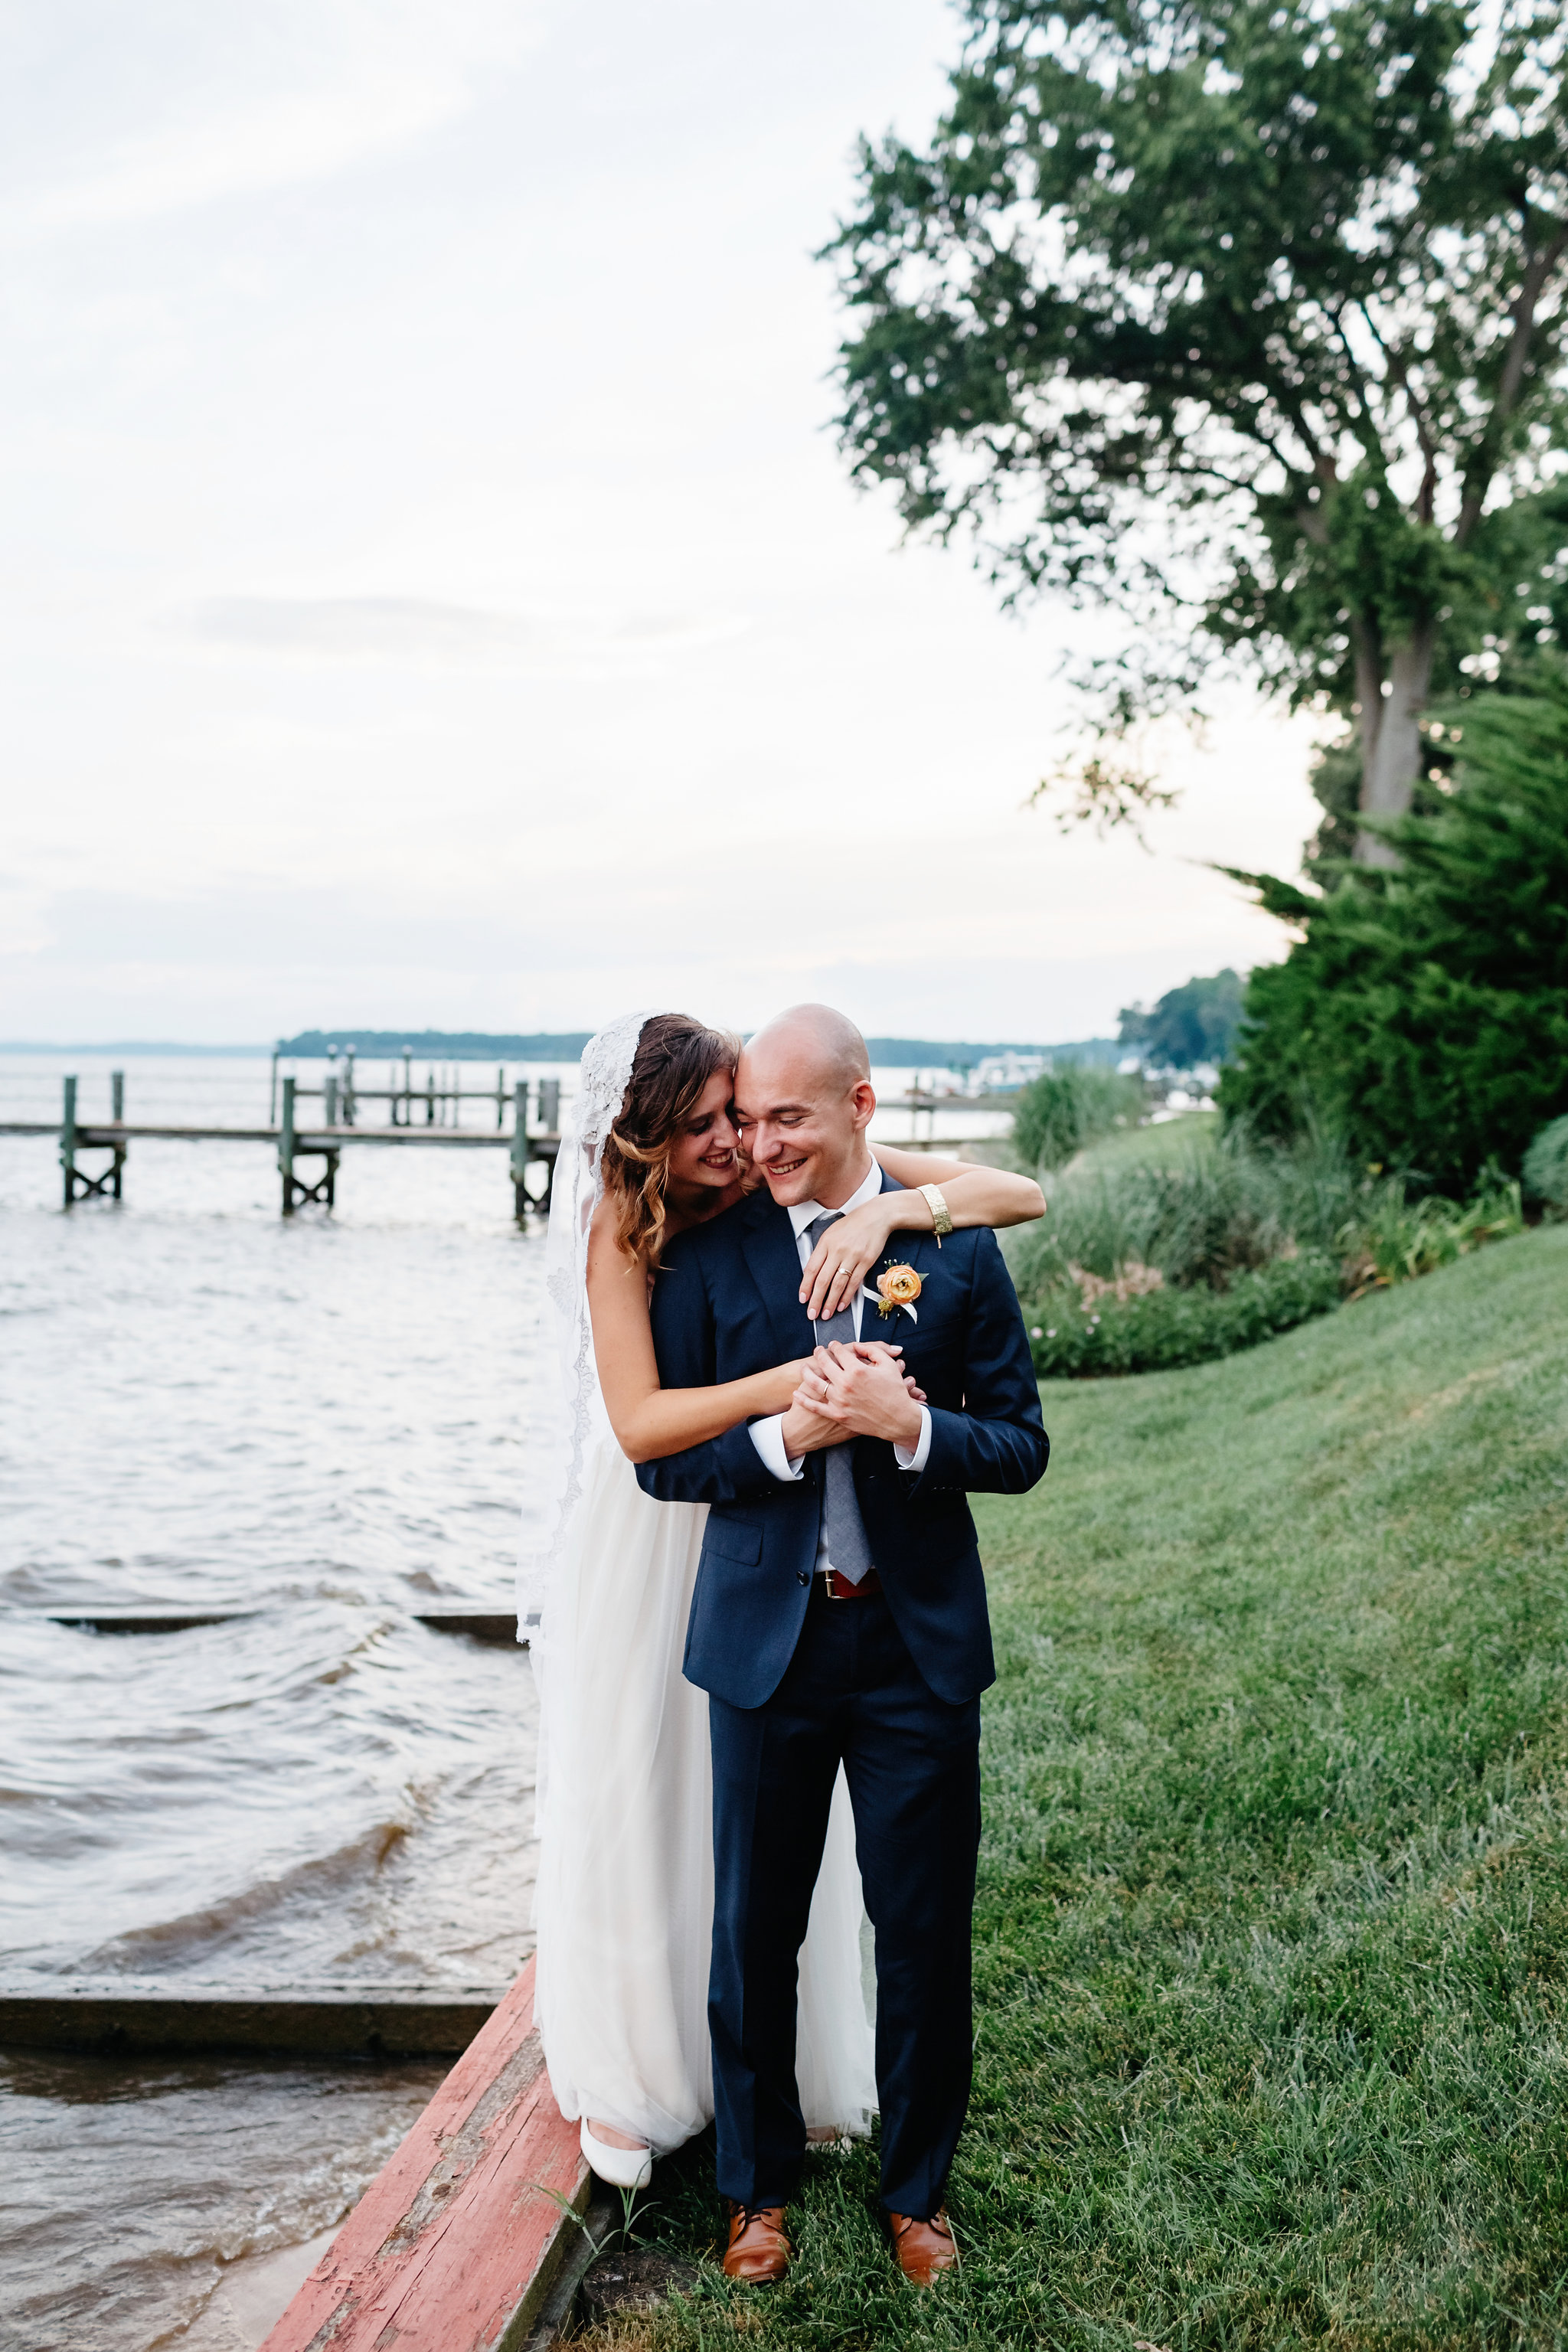 Maria&Dave2017-07-28at9.36.59AM128.jpg